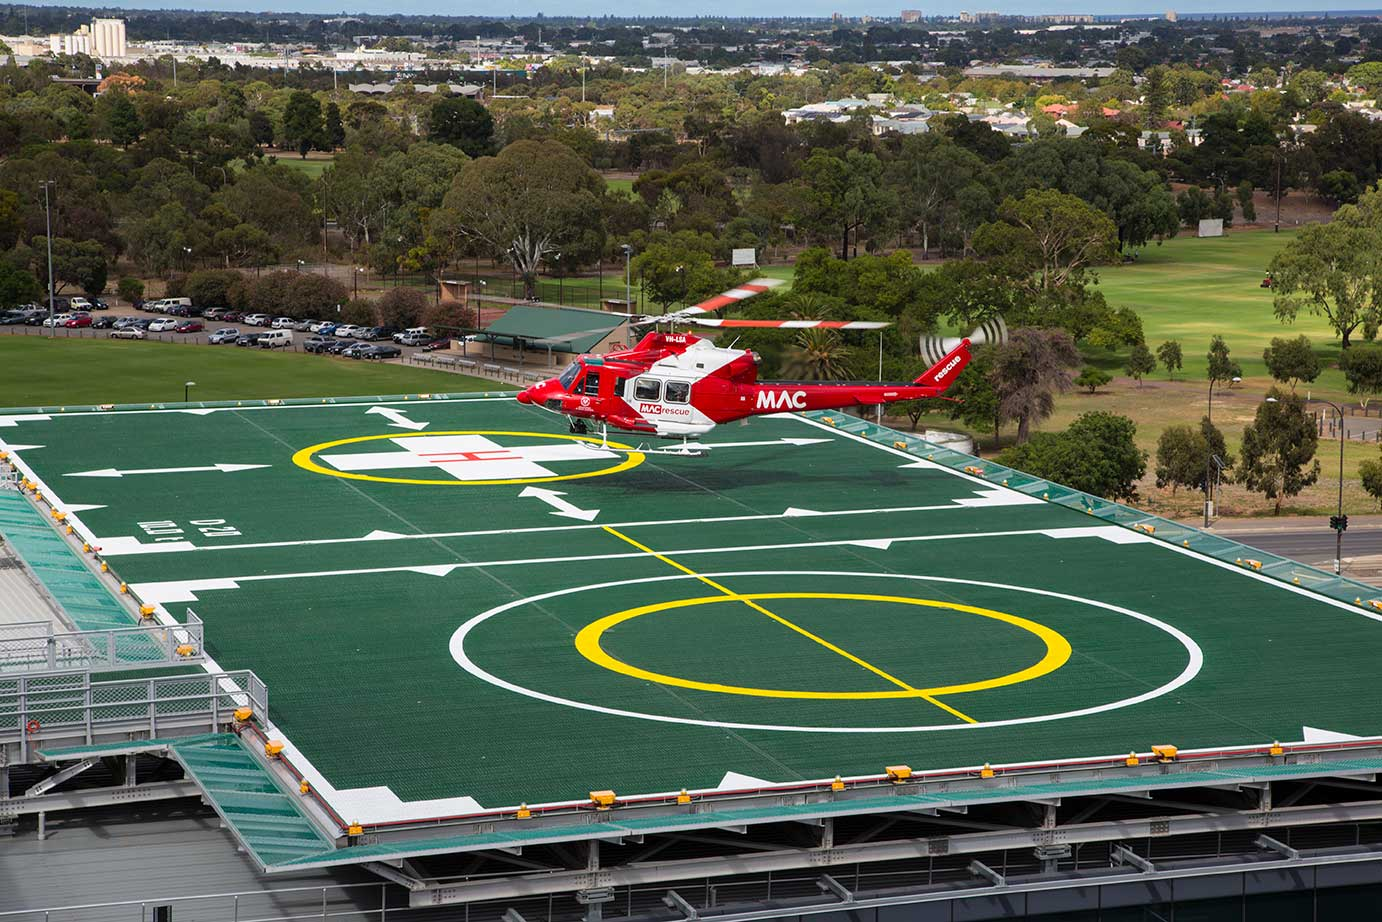 helipad_helicopter_testing